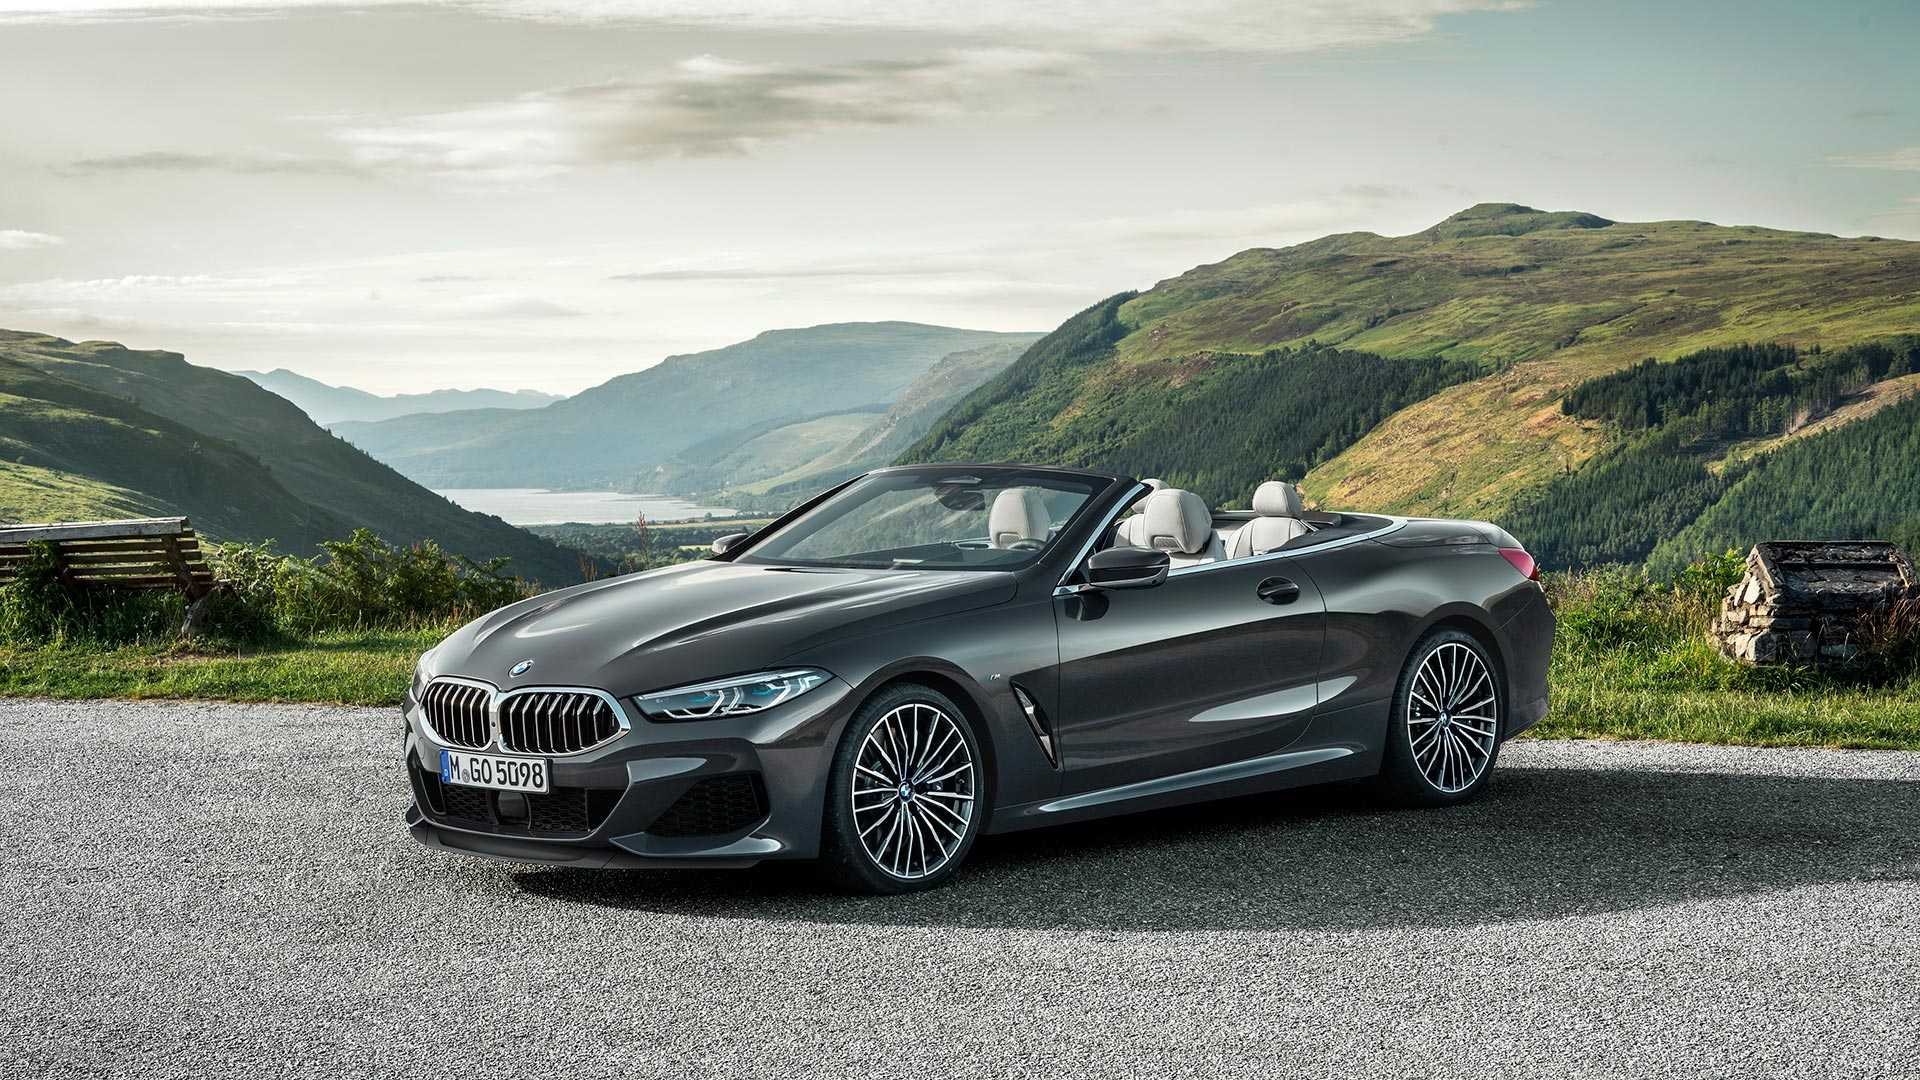 97 All New Bmw Hardtop Convertible 2019 Exterior Price